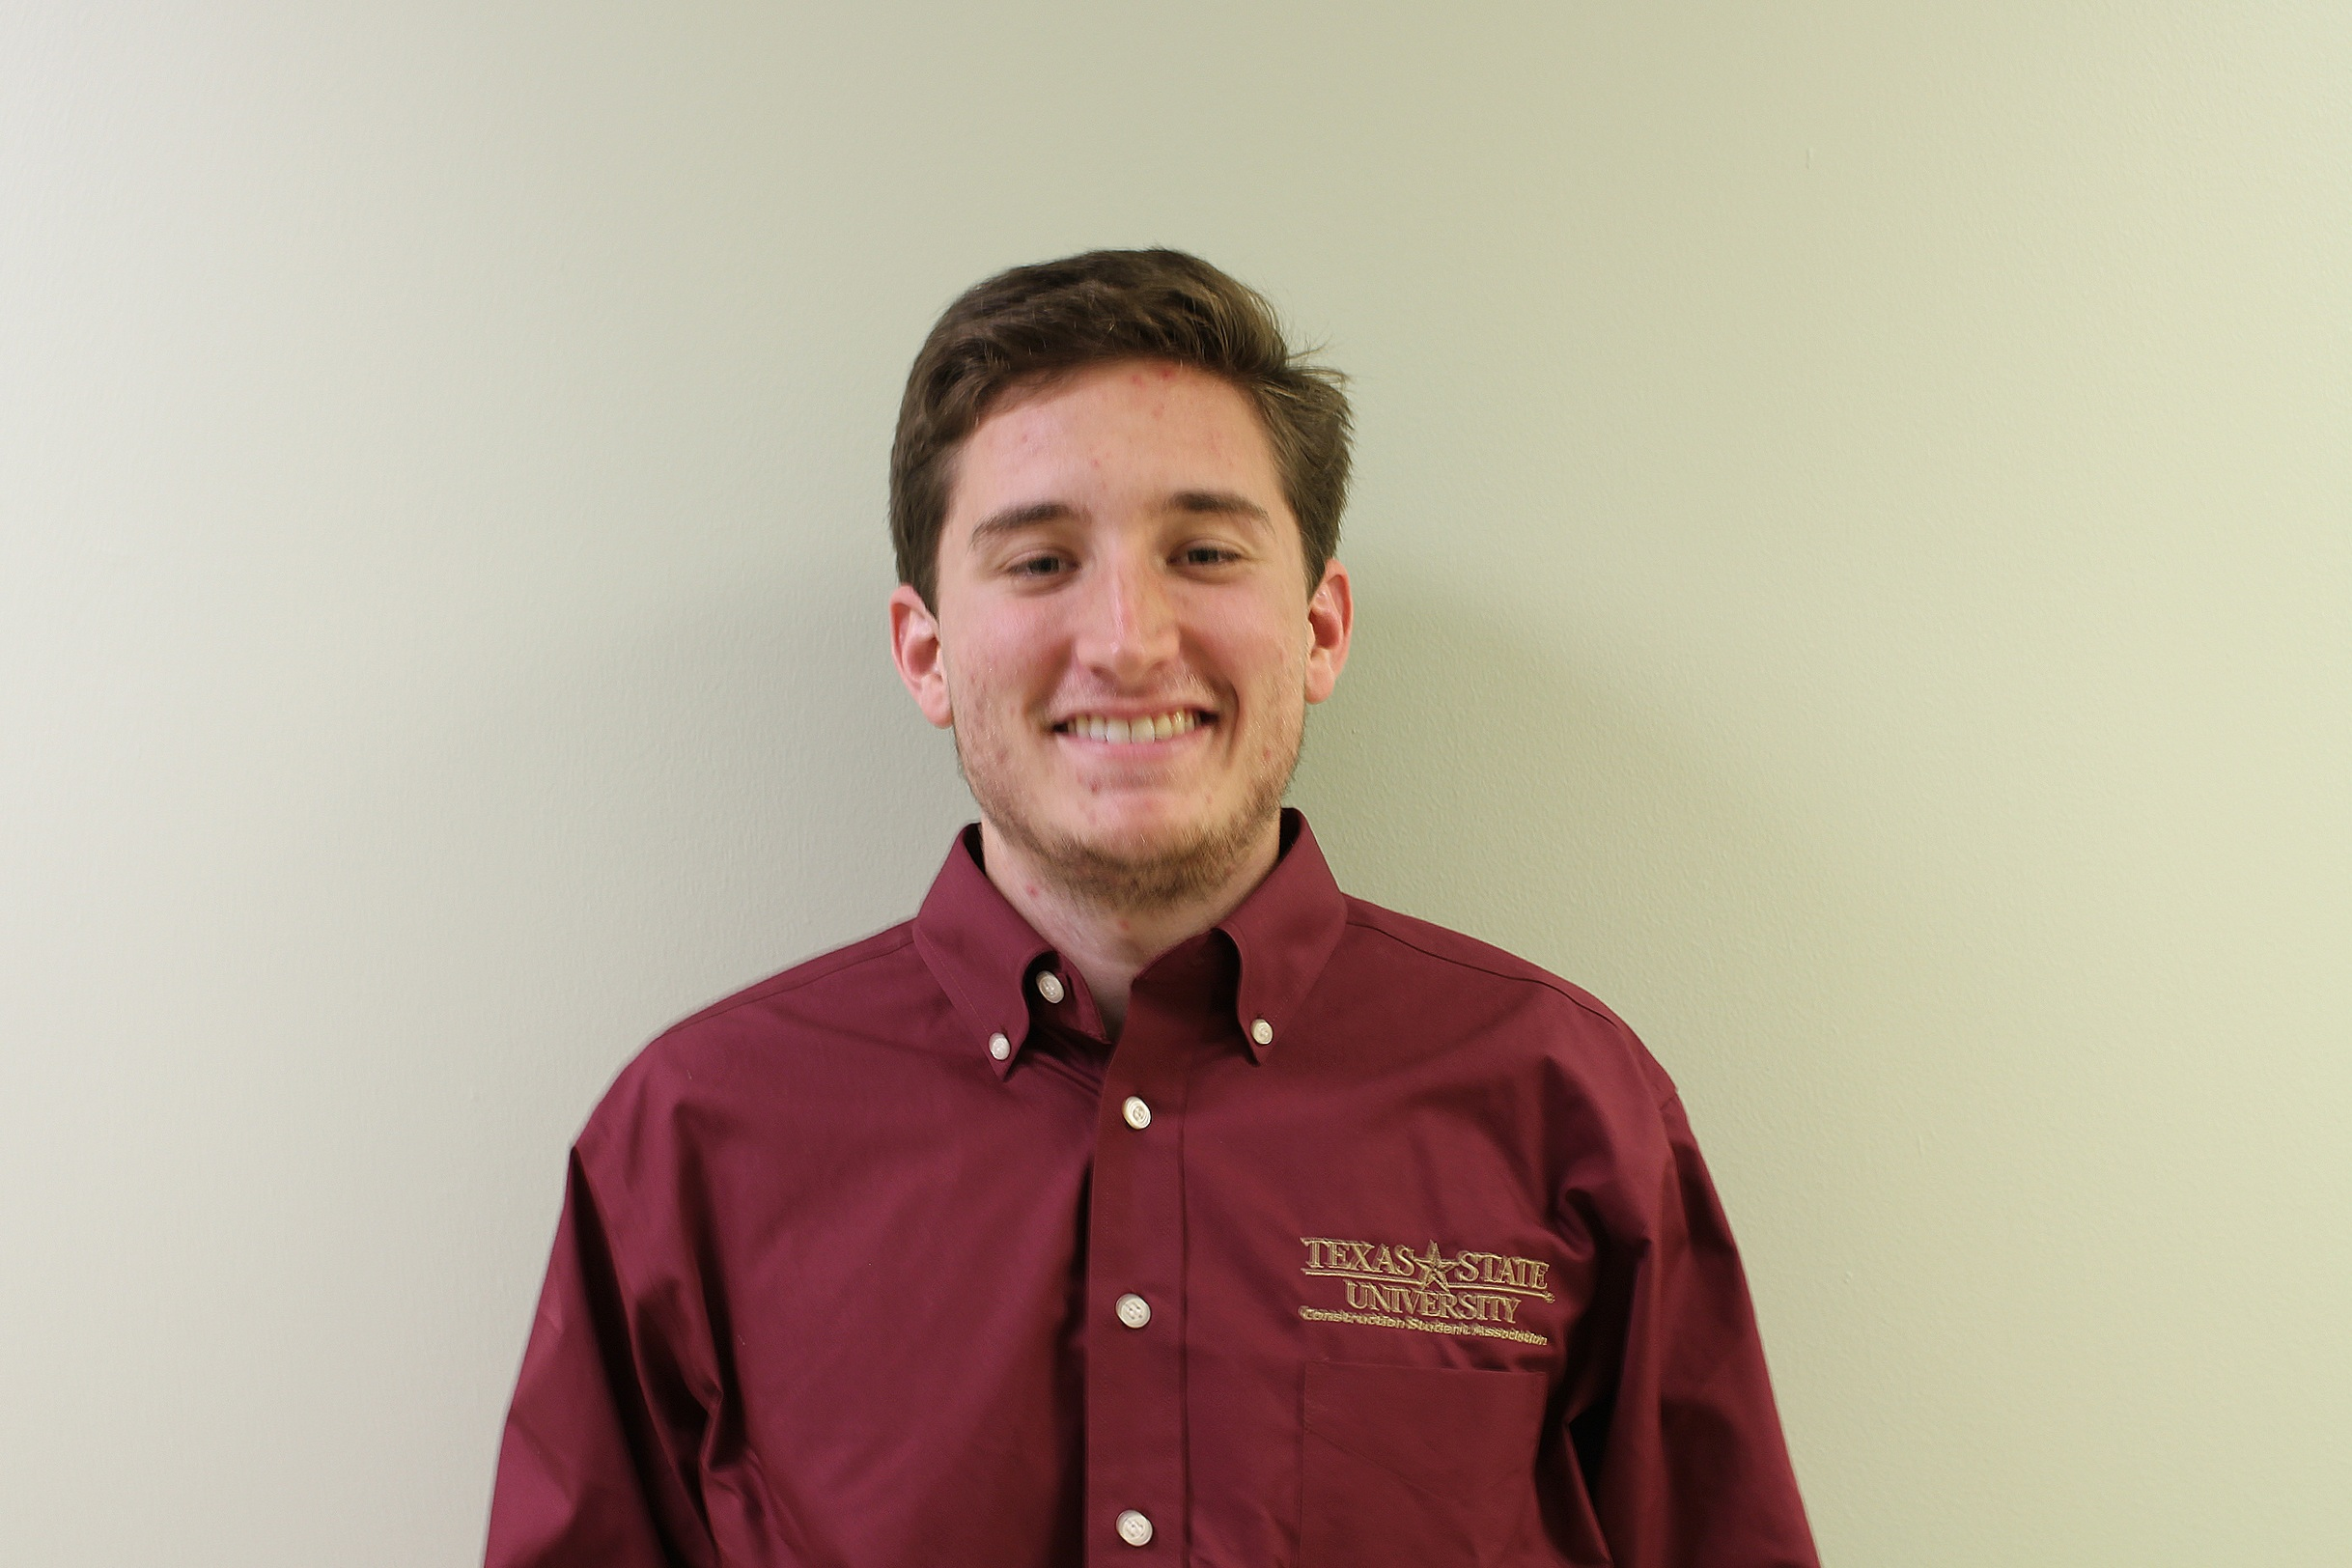 NAHB Ambassador - Ethan Lewis - Hometown: Midland, TexasGraduation: Fall 2020Field of Interest: ResidentialPast Experience: Kirby walls Custom Builders, Kahler Custom Homes, NAHB CompetitionTasks: Responsible for maintaining a relationship between Students and NAHB. In charge of organizing meetings, events, and volunteering opportunities throughout the semester.Contact: ejl61@txstate.edu